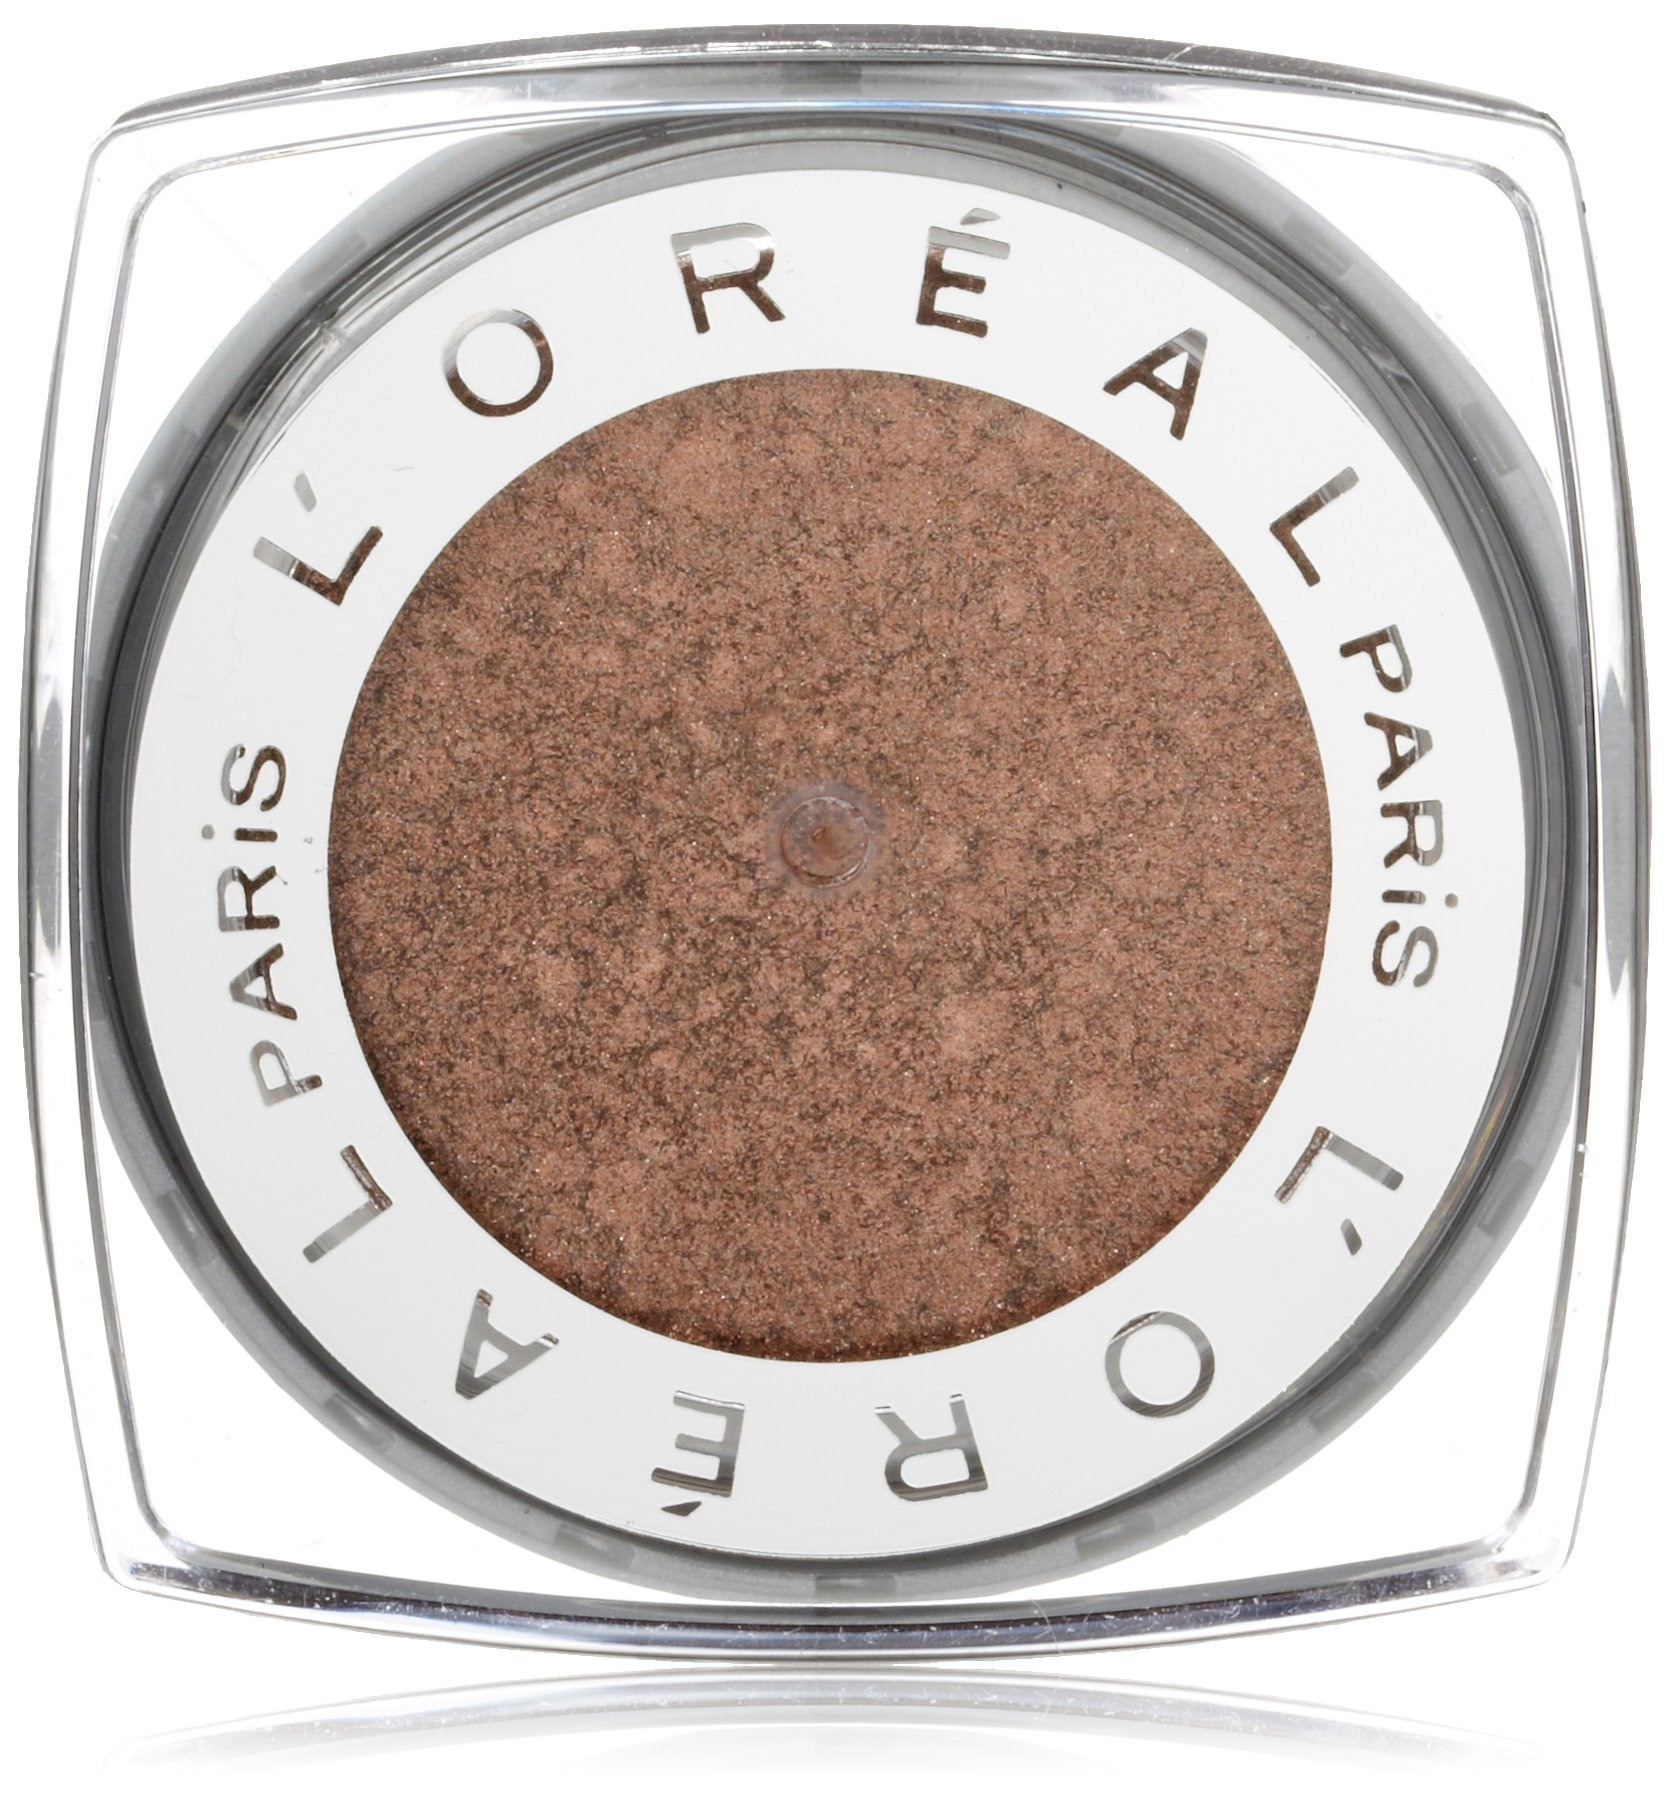 L'Oréal Paris Infallible 24HR Shadow, Bronzed Taupe, 0.12 oz.